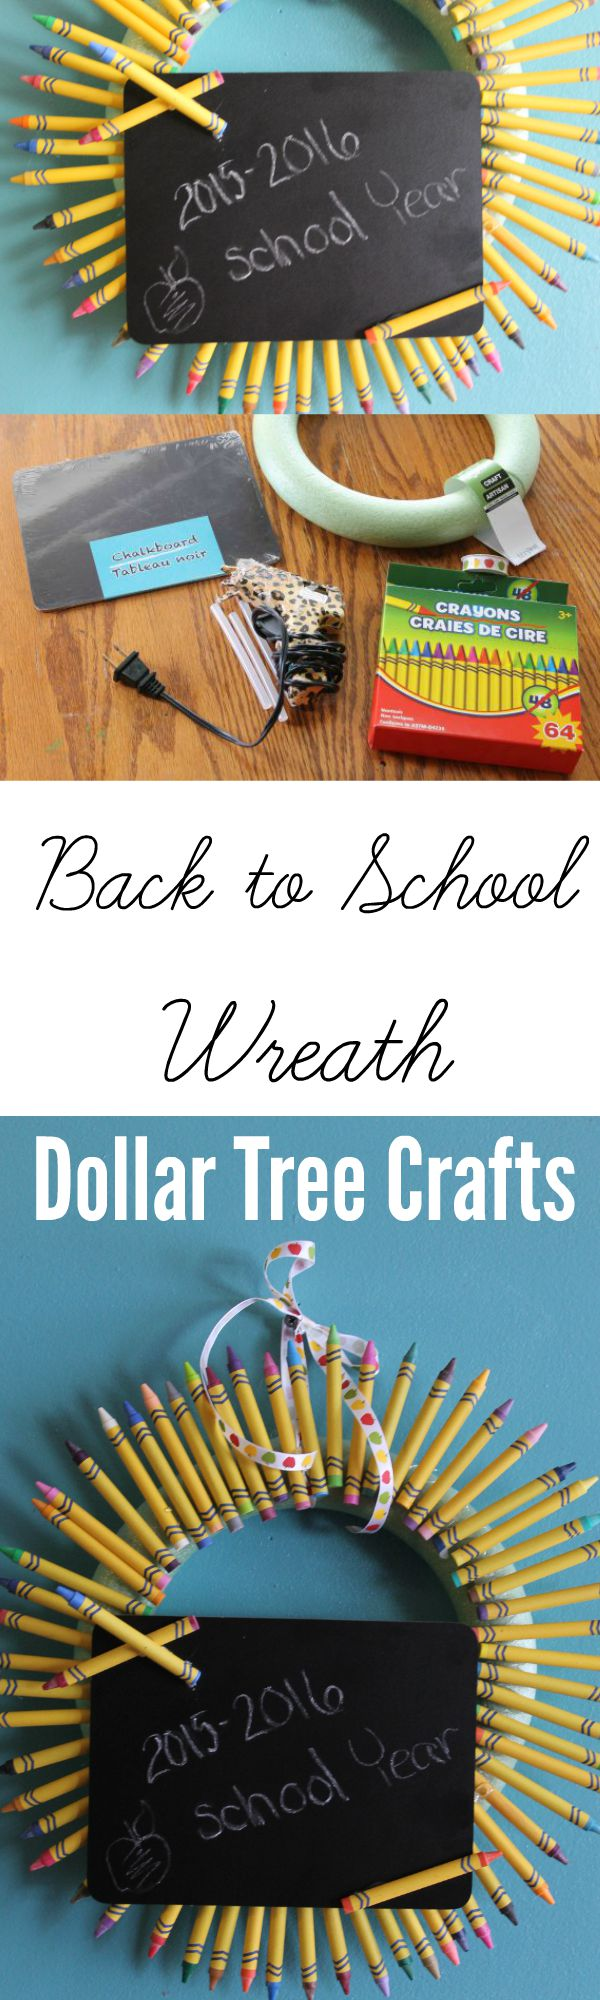 Back to School Dollar Tree Craft Wreath